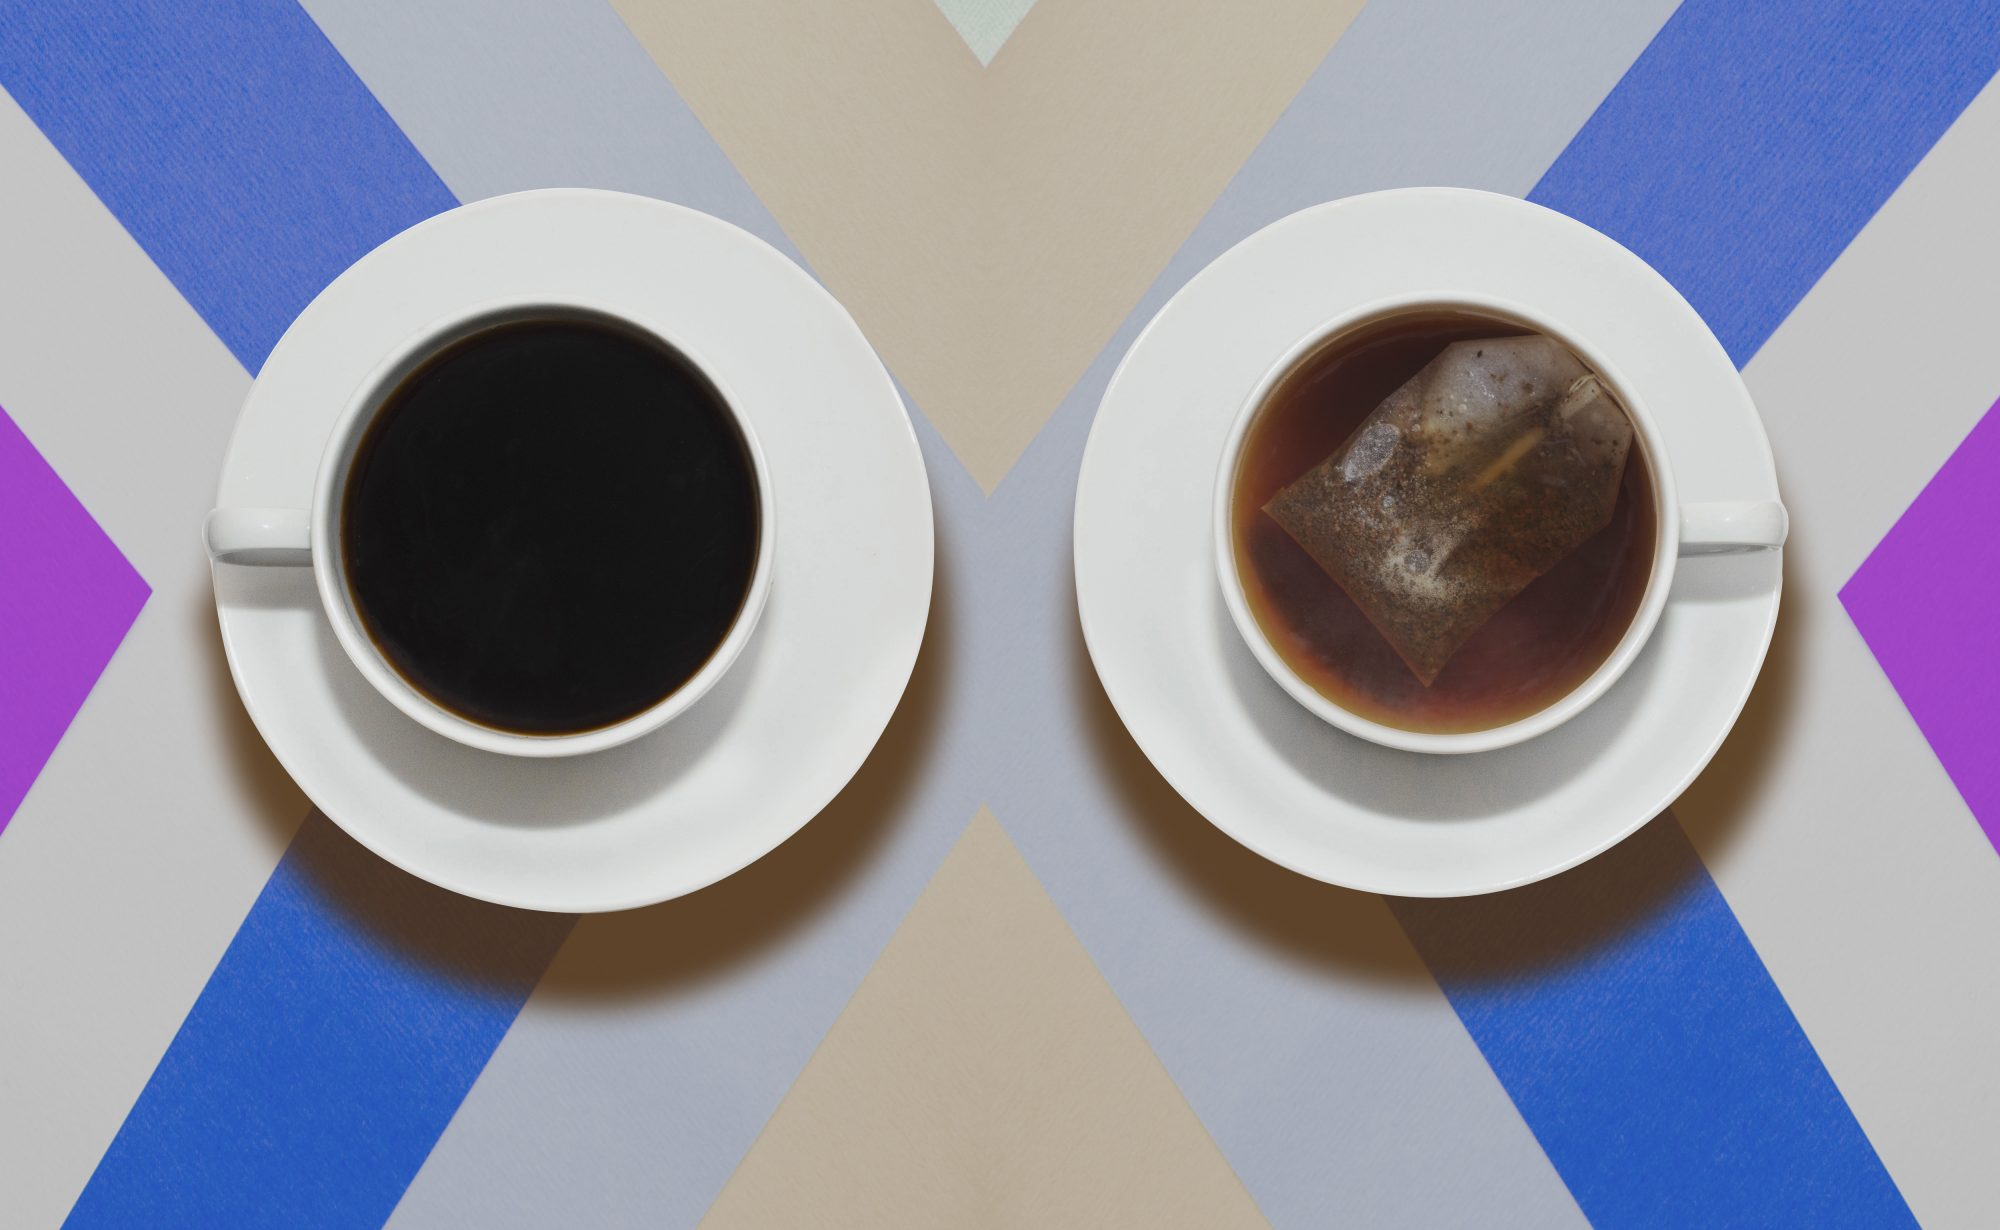 Are You a Coffee or a Tea Person? Your Genes May Hold the Answer